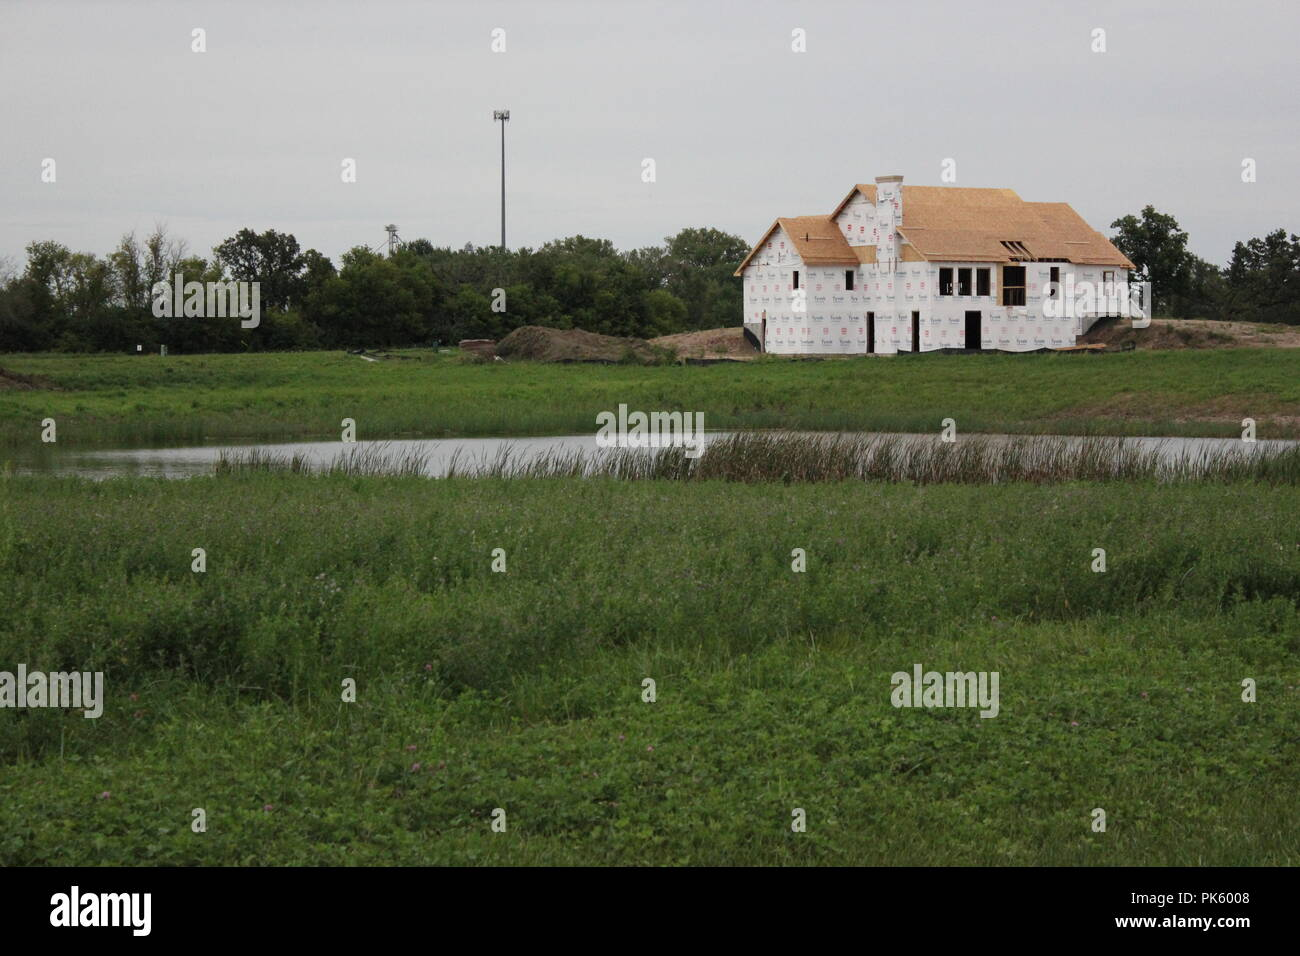 New residential houses still under construction in rural Marengo, Illinois, McHenry County. - Stock Image